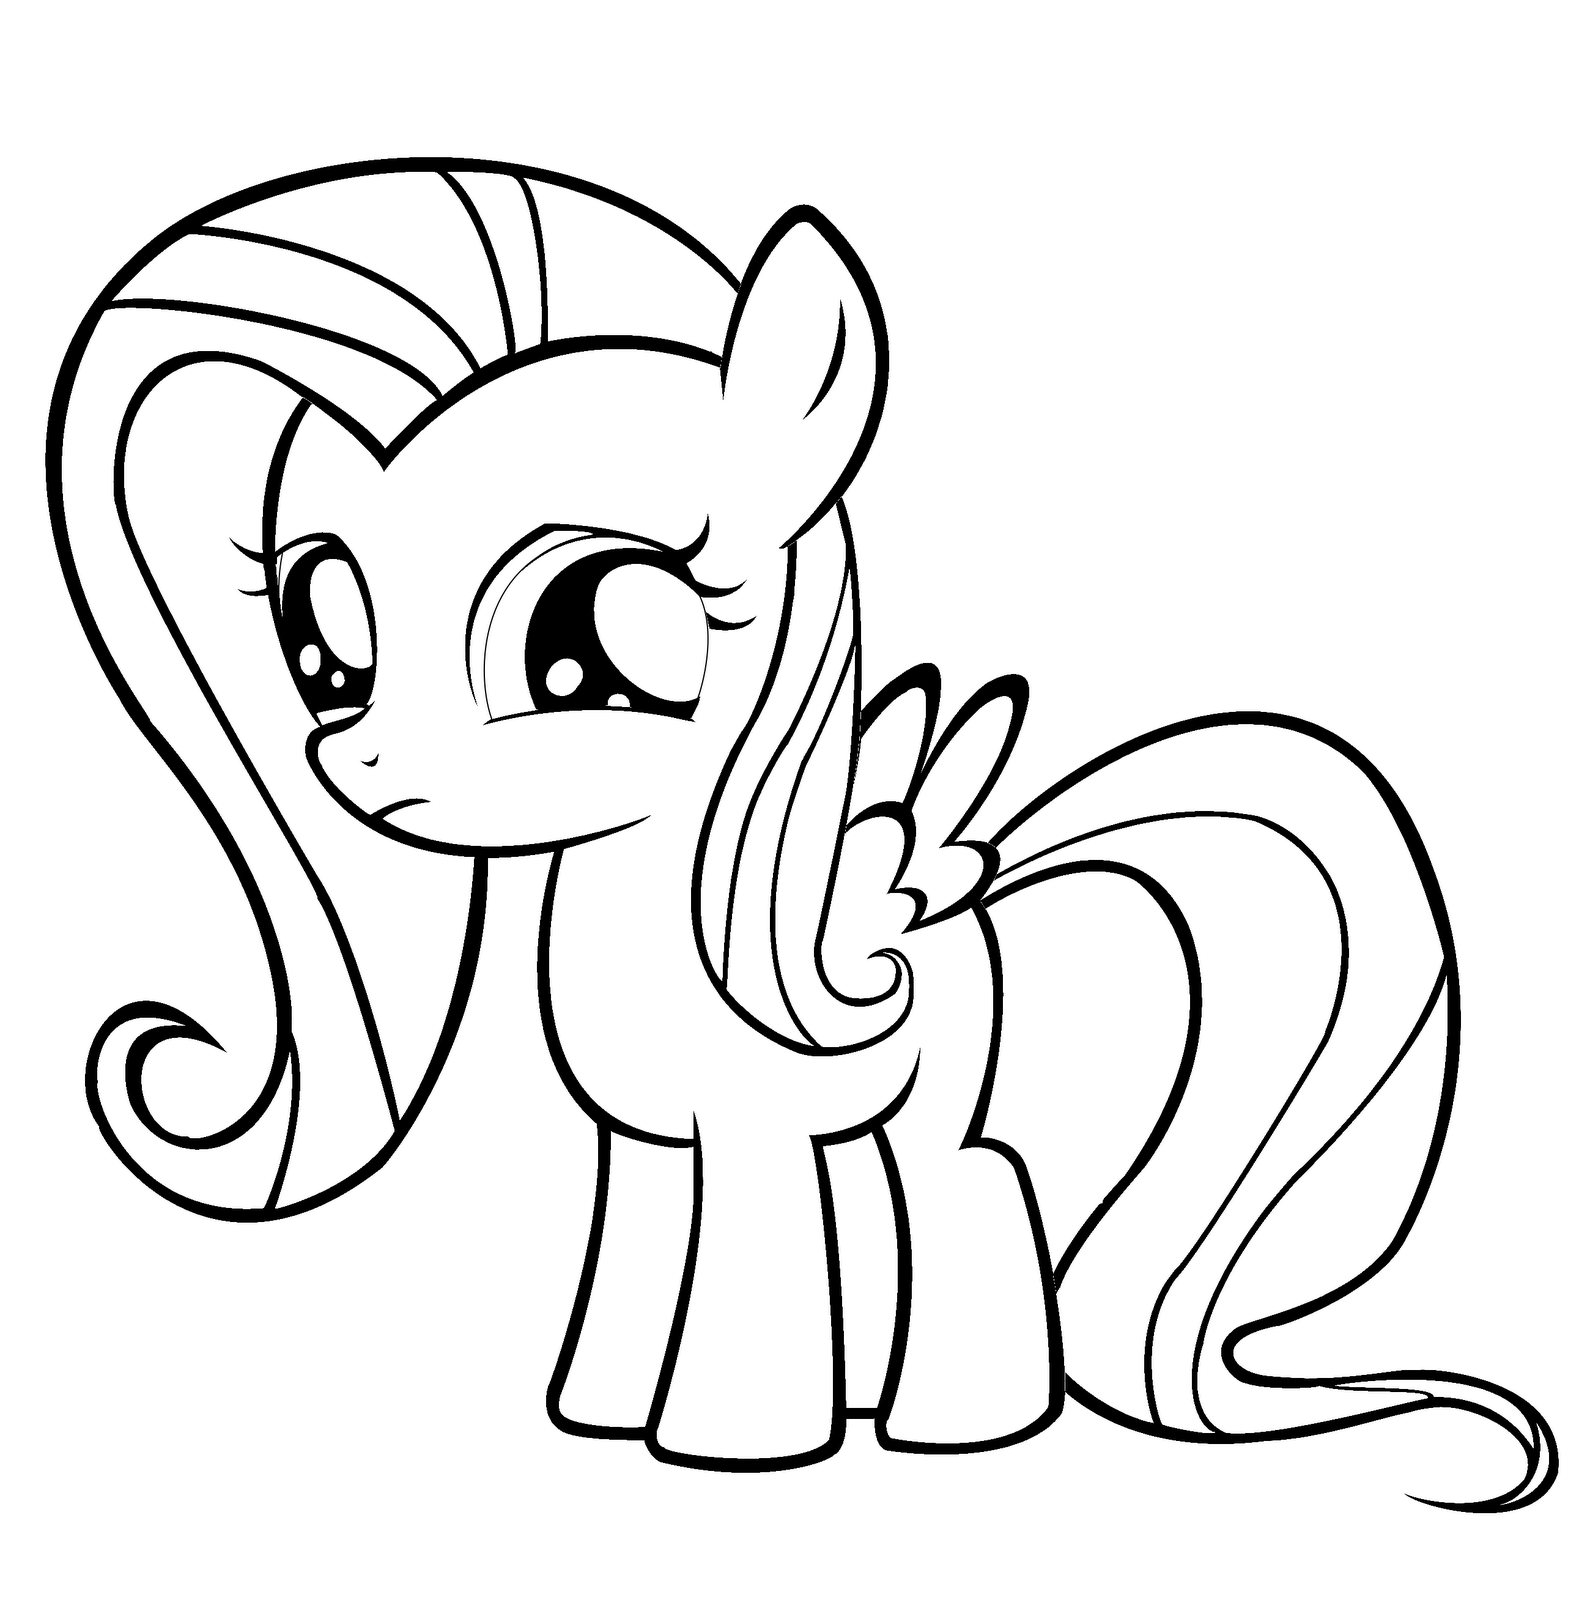 my little pony coloring images cute pony coloring page wecoloringpagecom pony coloring little my images